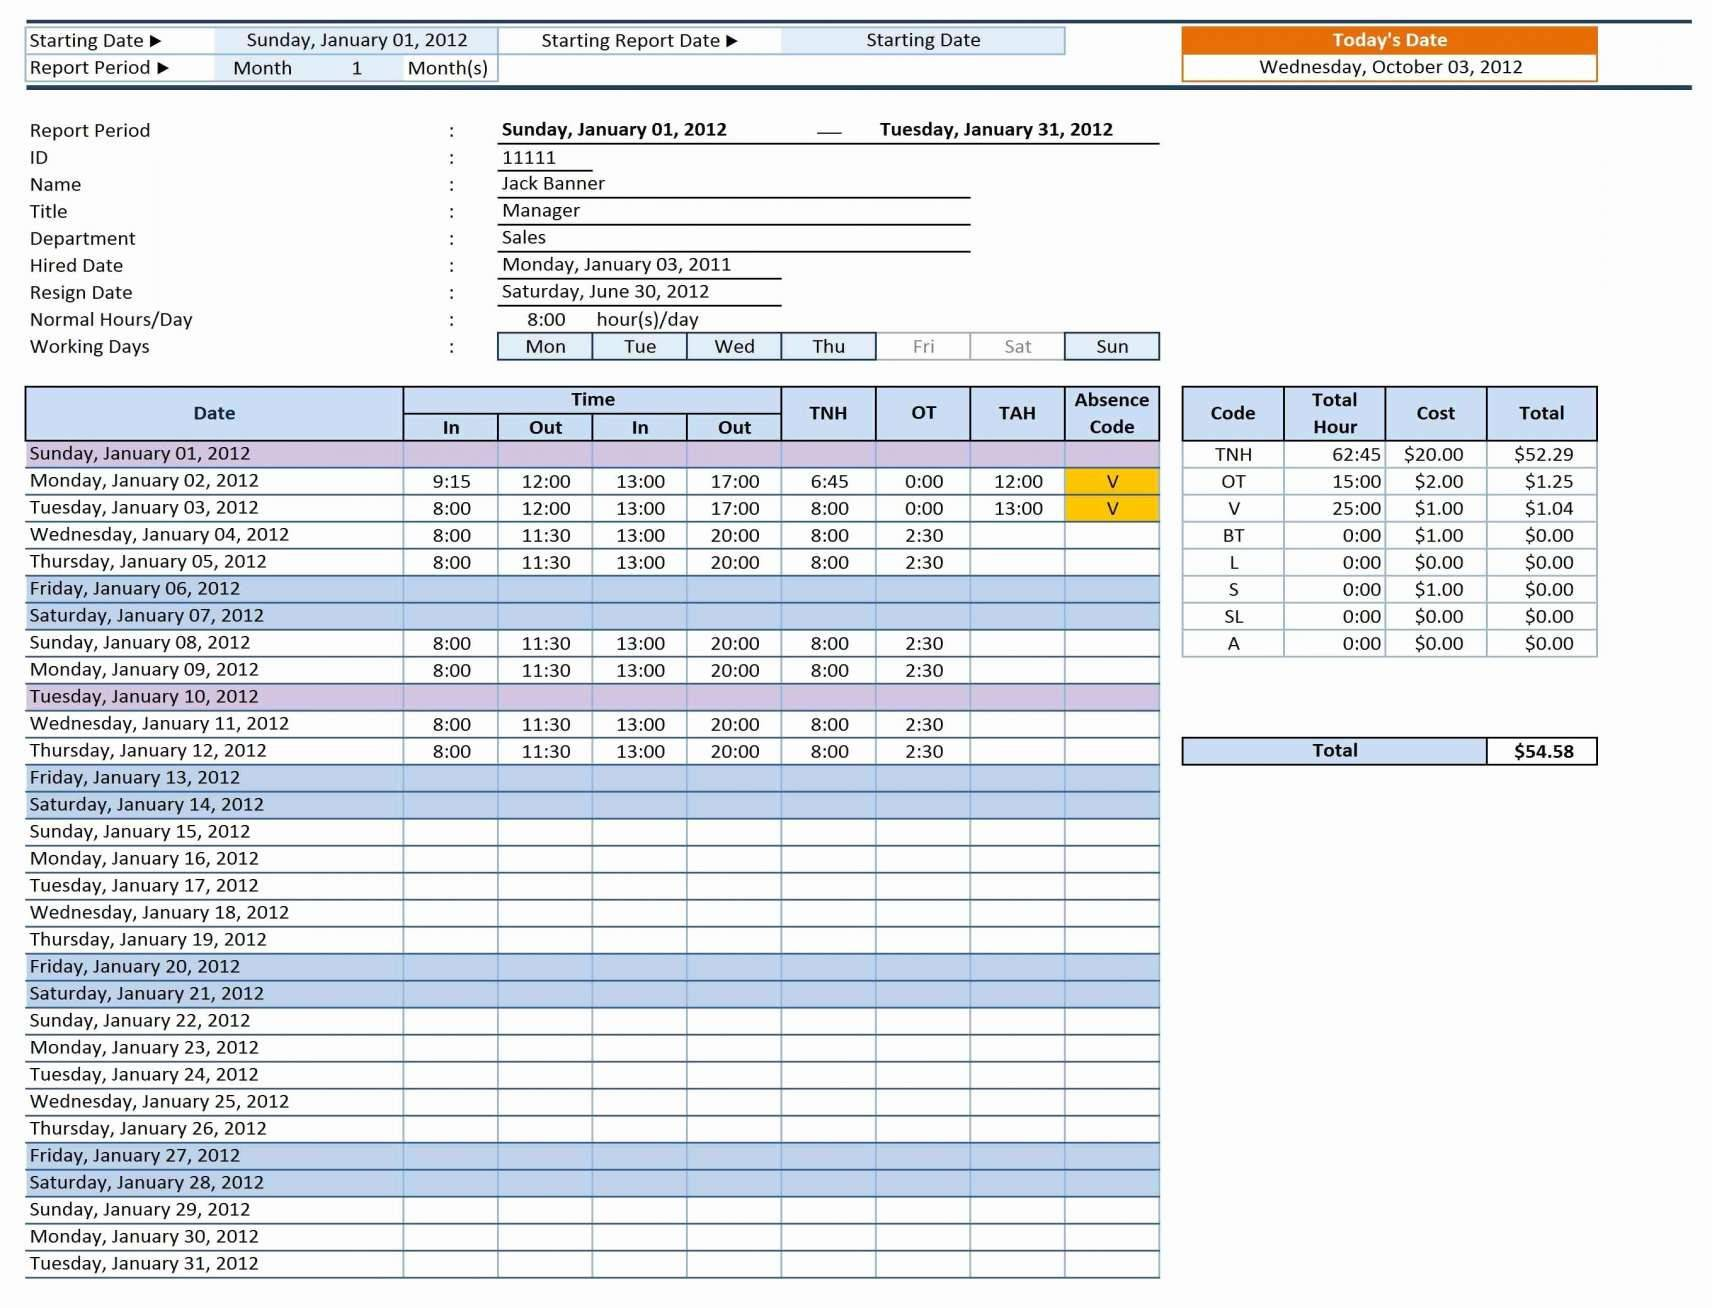 Vacation Tracking Spreadsheet Template